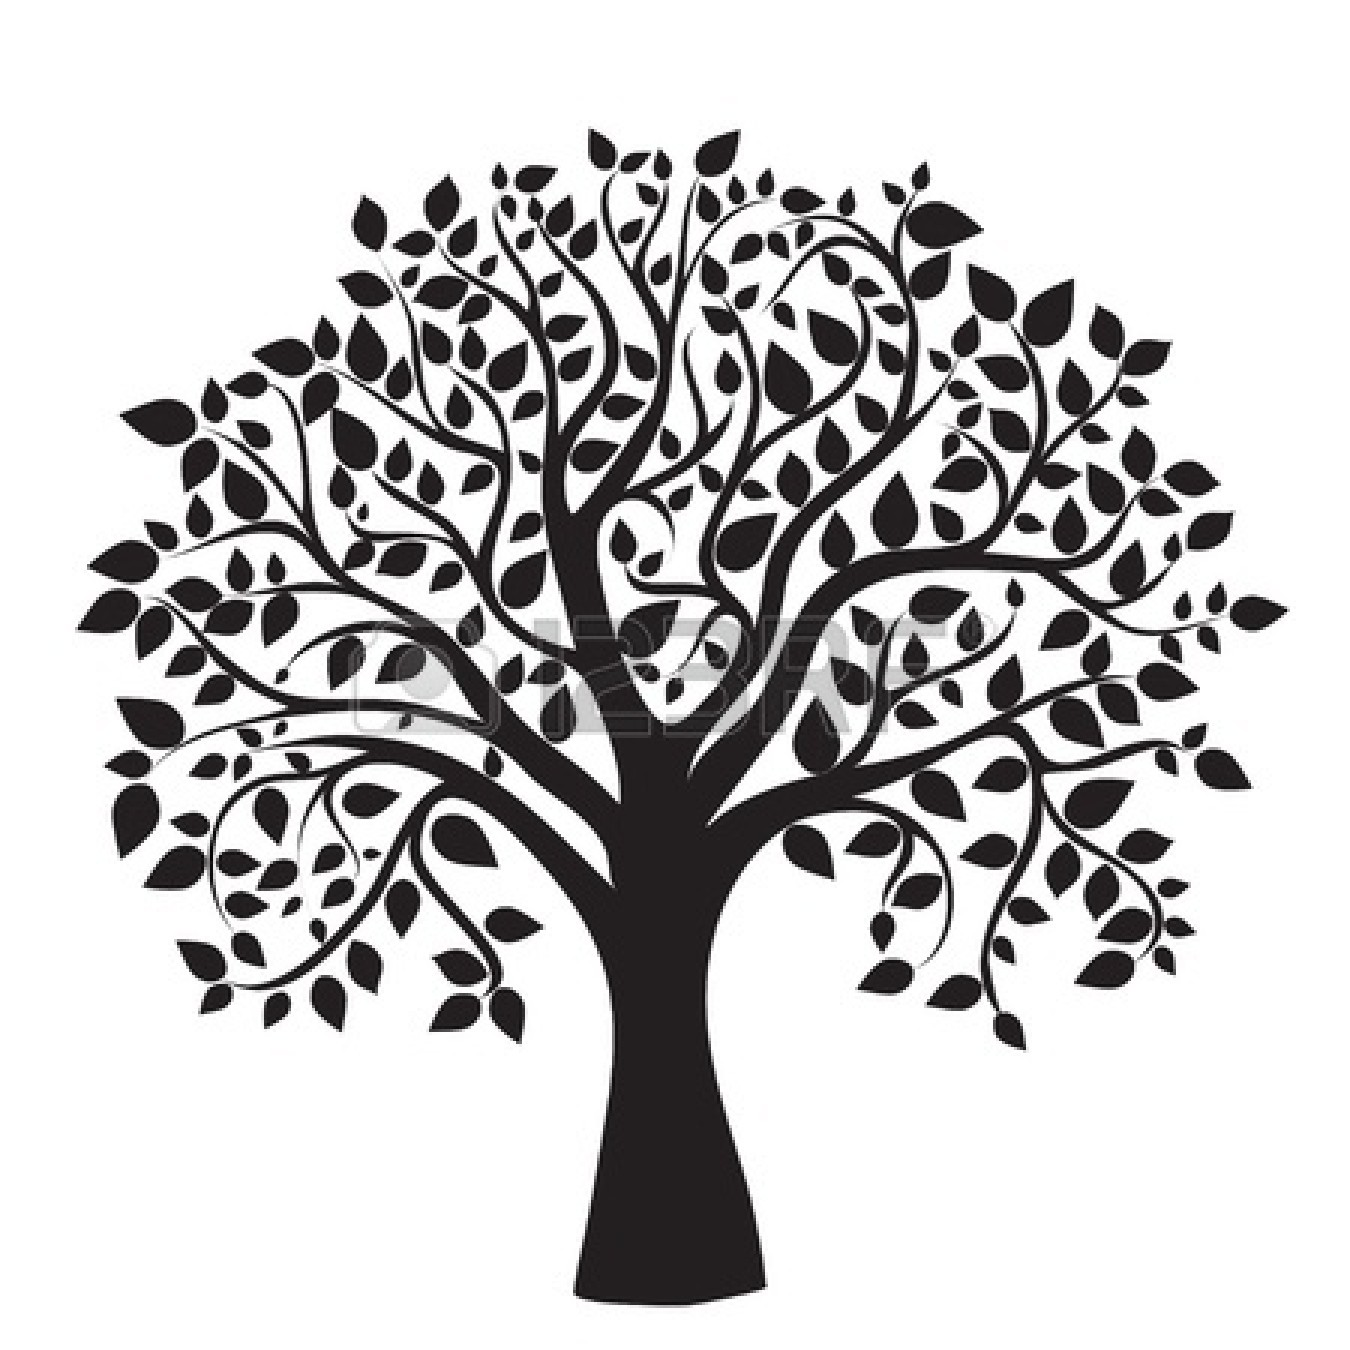 hight resolution of family reunion clipart famil family reunion tree clip art